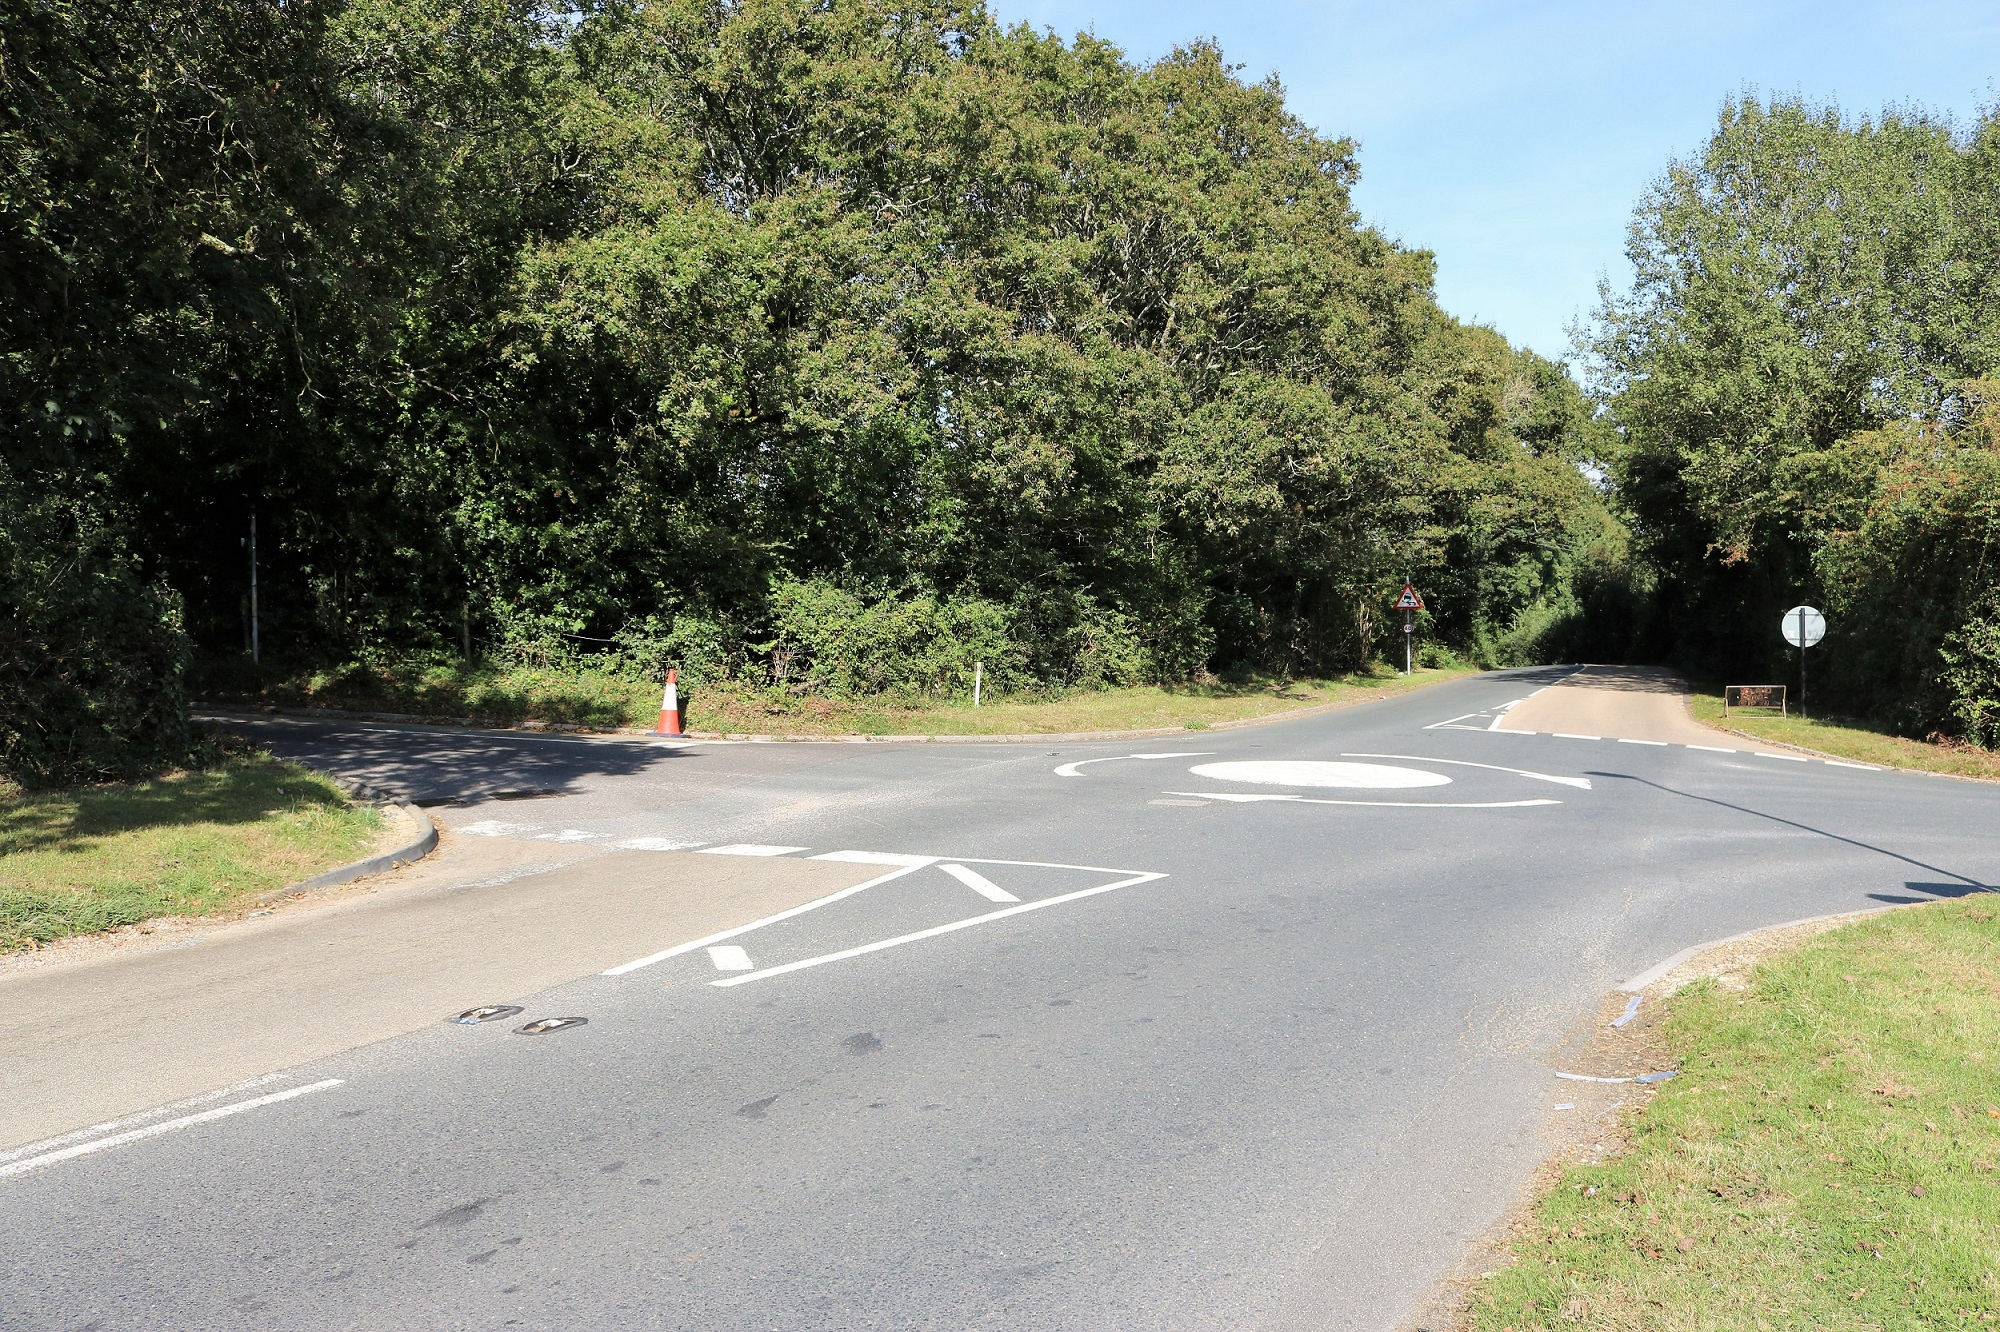 Four way road junction with mini roundabout, trees and hedging bordering the roadside